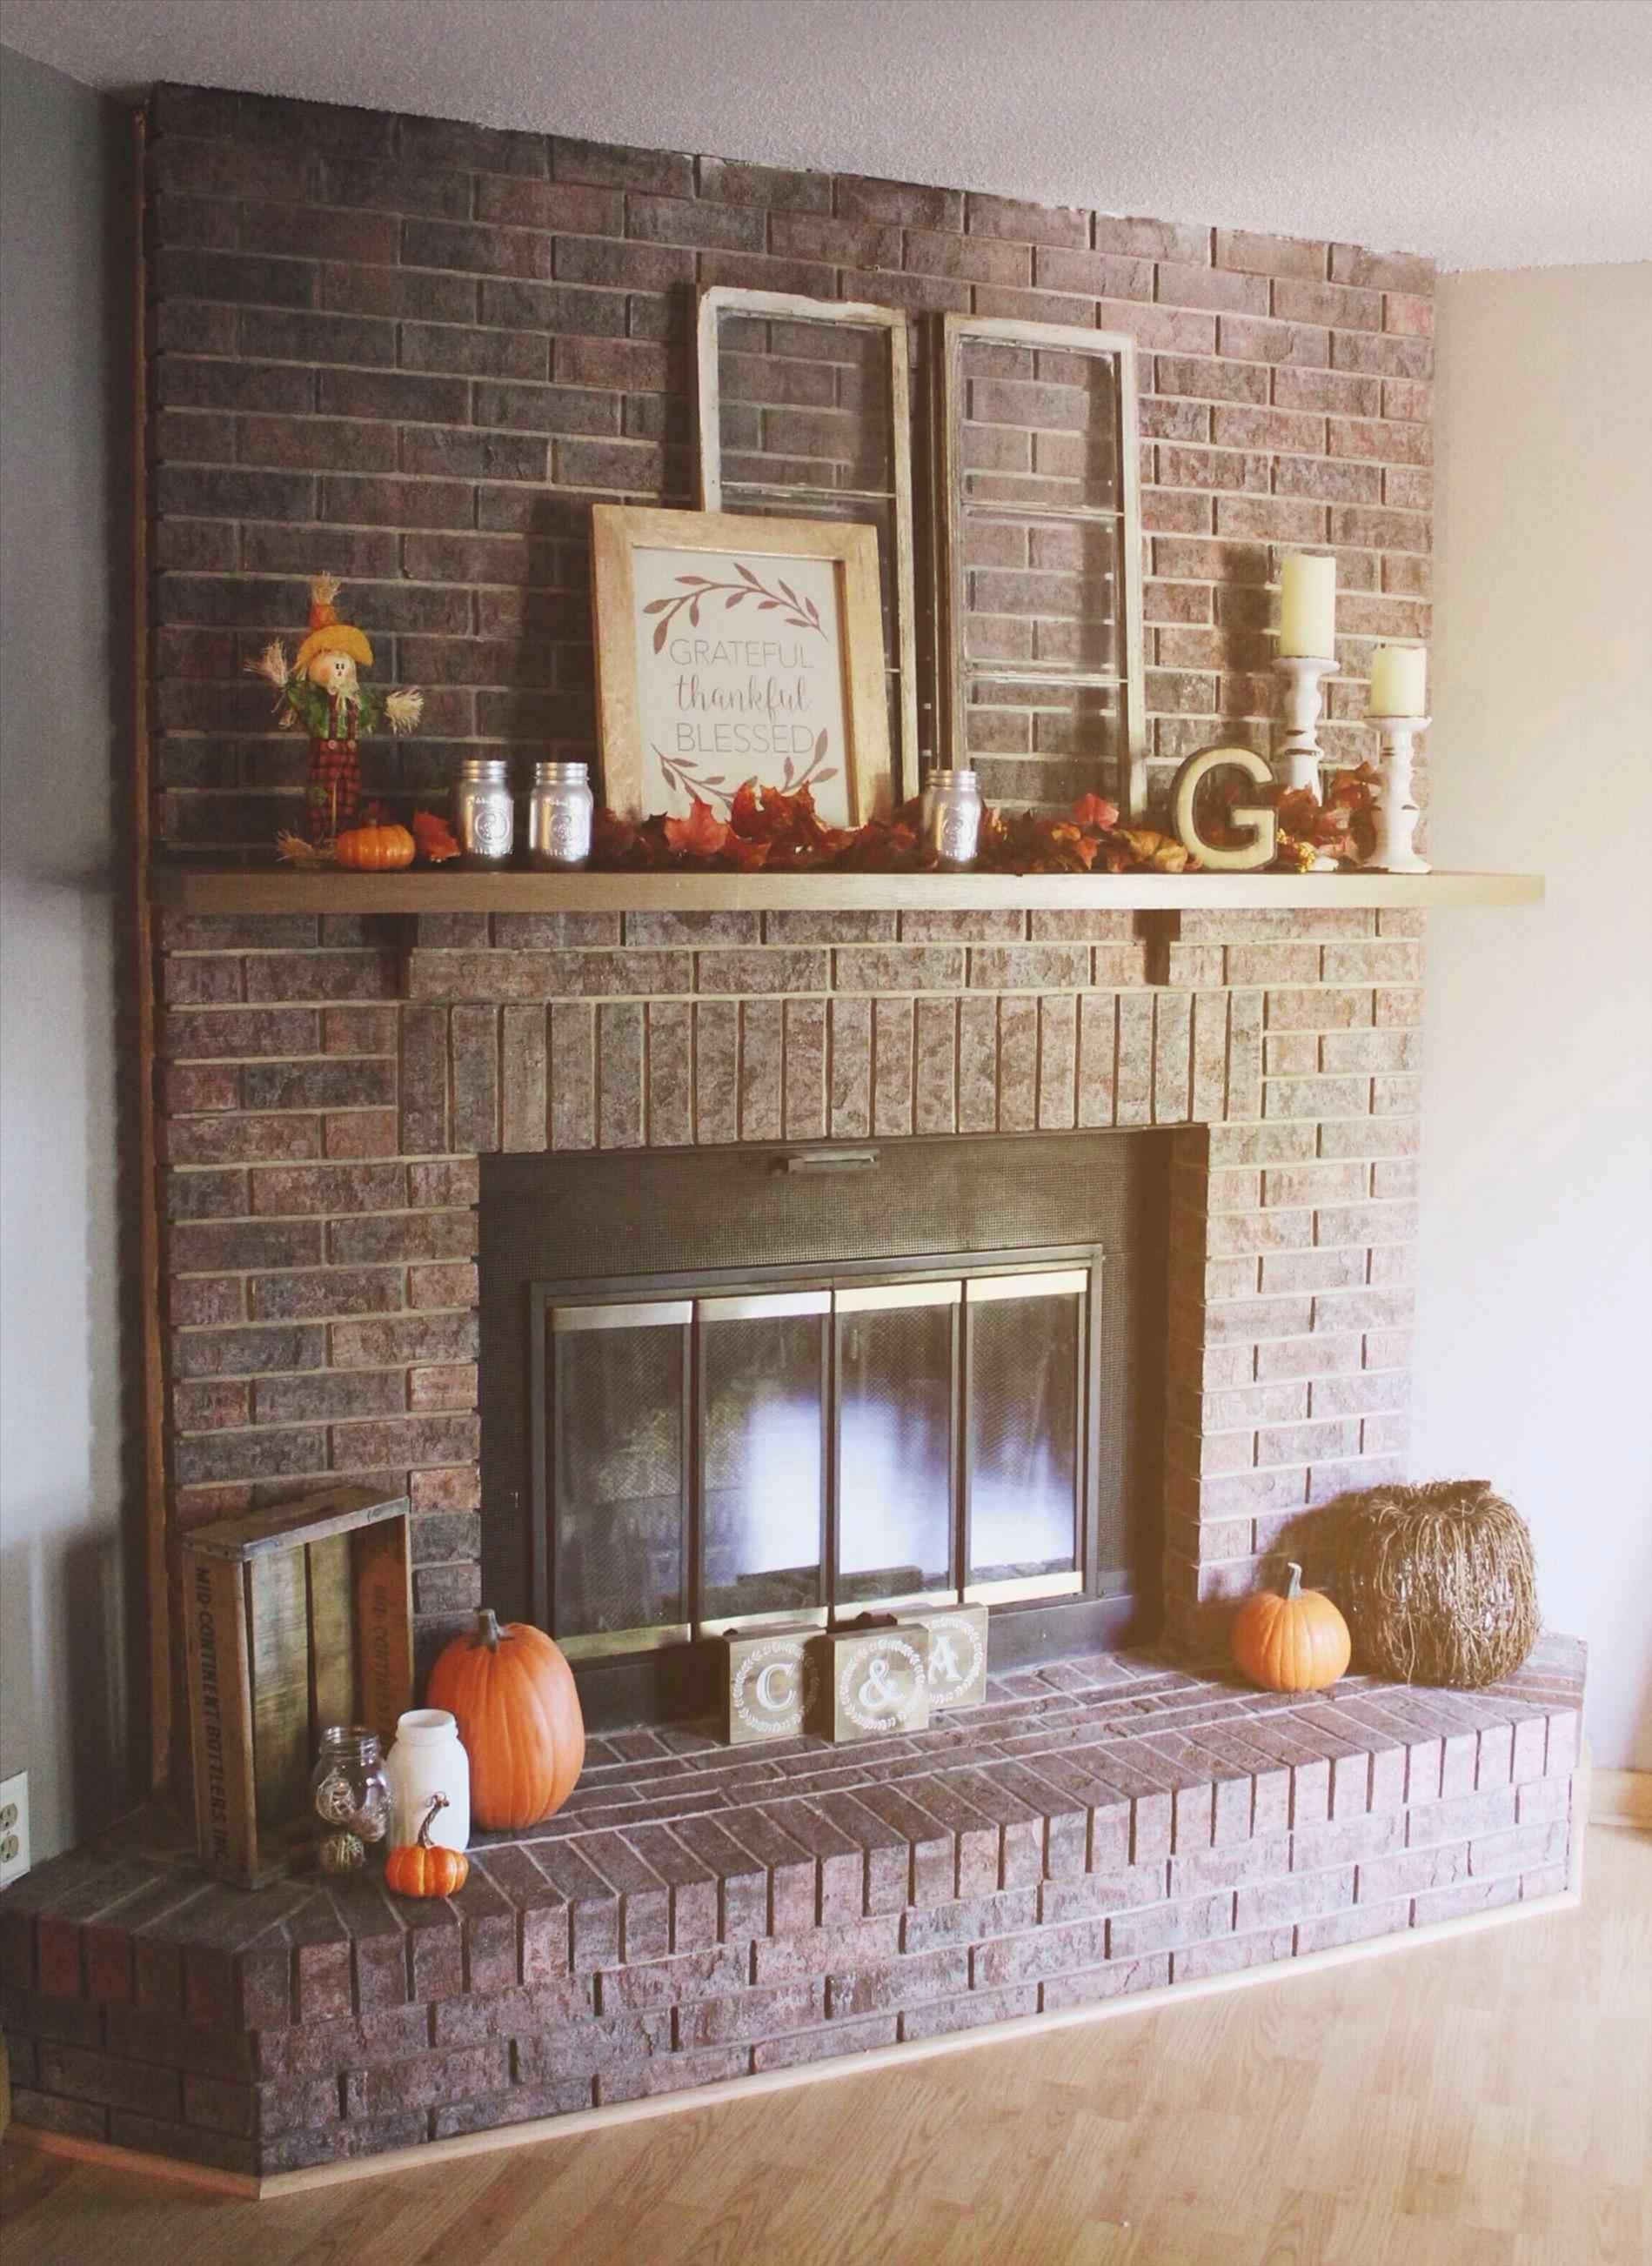 20 Living Room With Fireplace That Will Warm You All: Astonishing 20+ Rustic Farmhouse Living Room Decorating